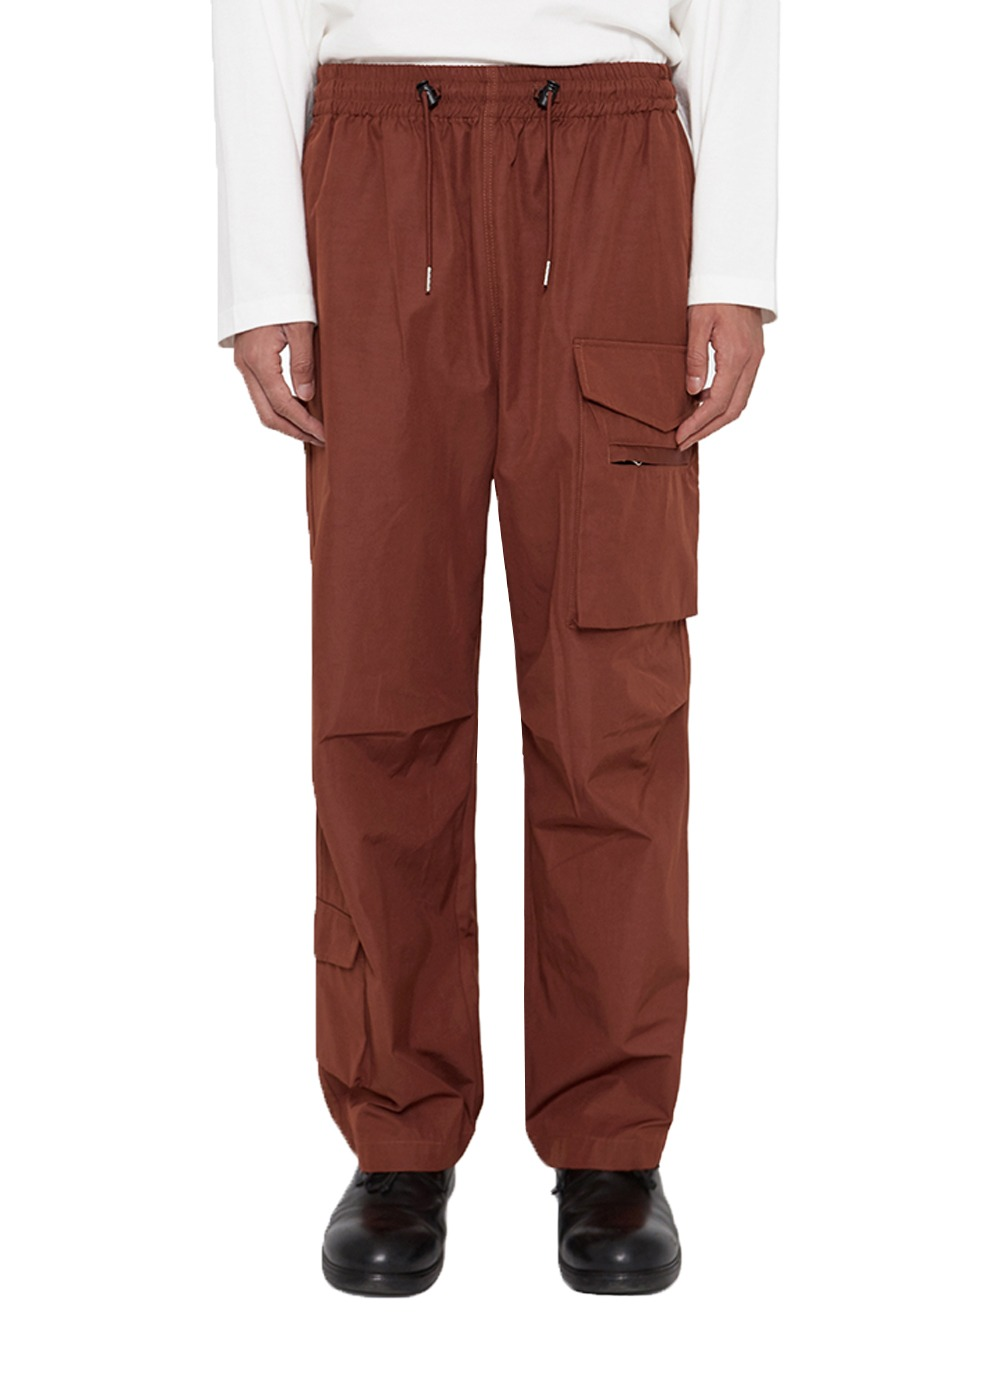 LIFUL KNEE TUCK CARGO PANTS red brown